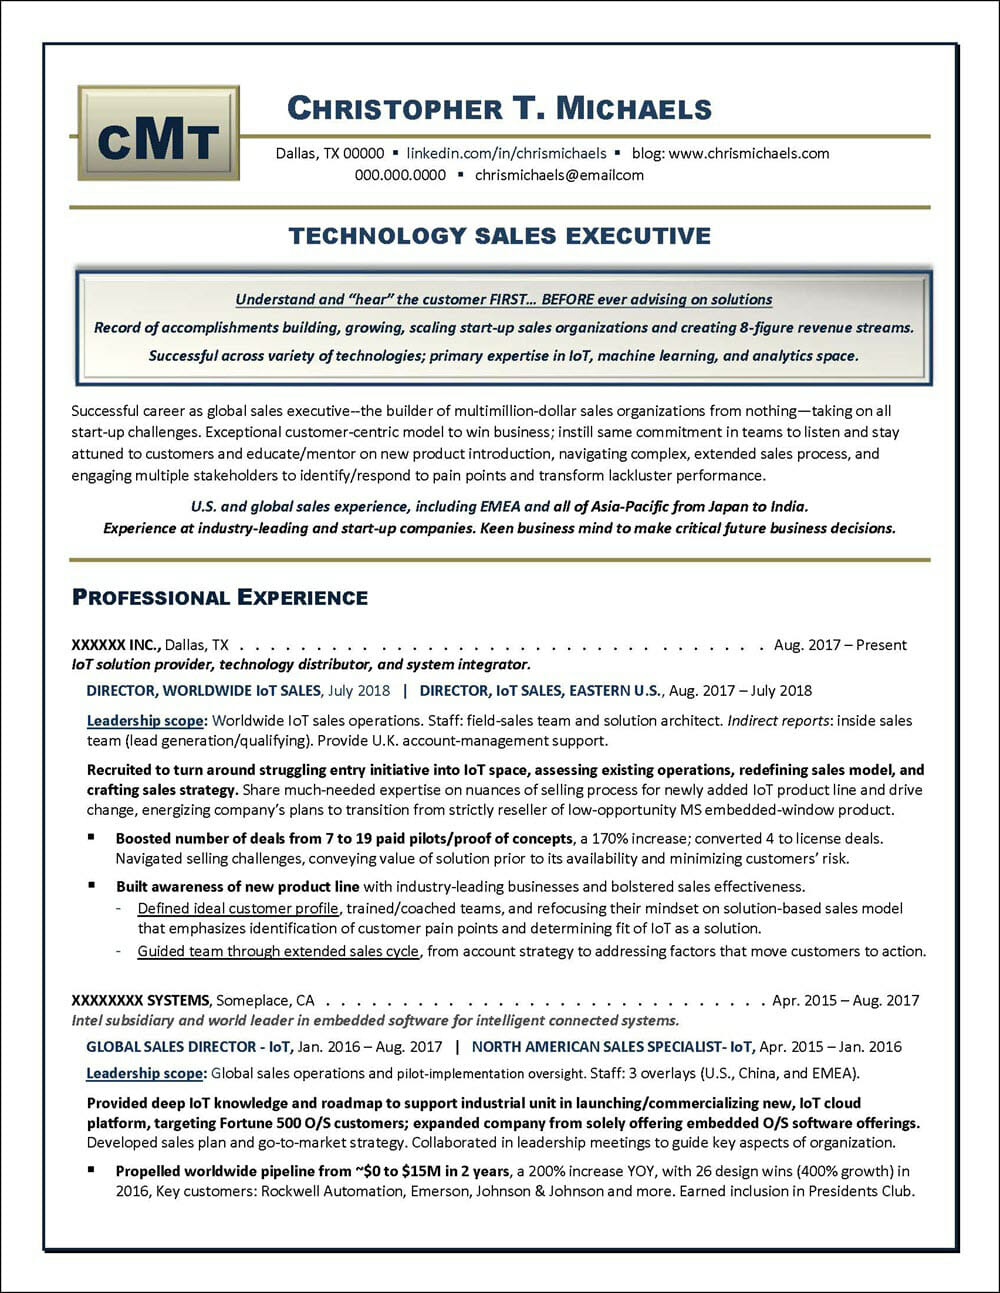 Technology Sales Executive Resume Page 1